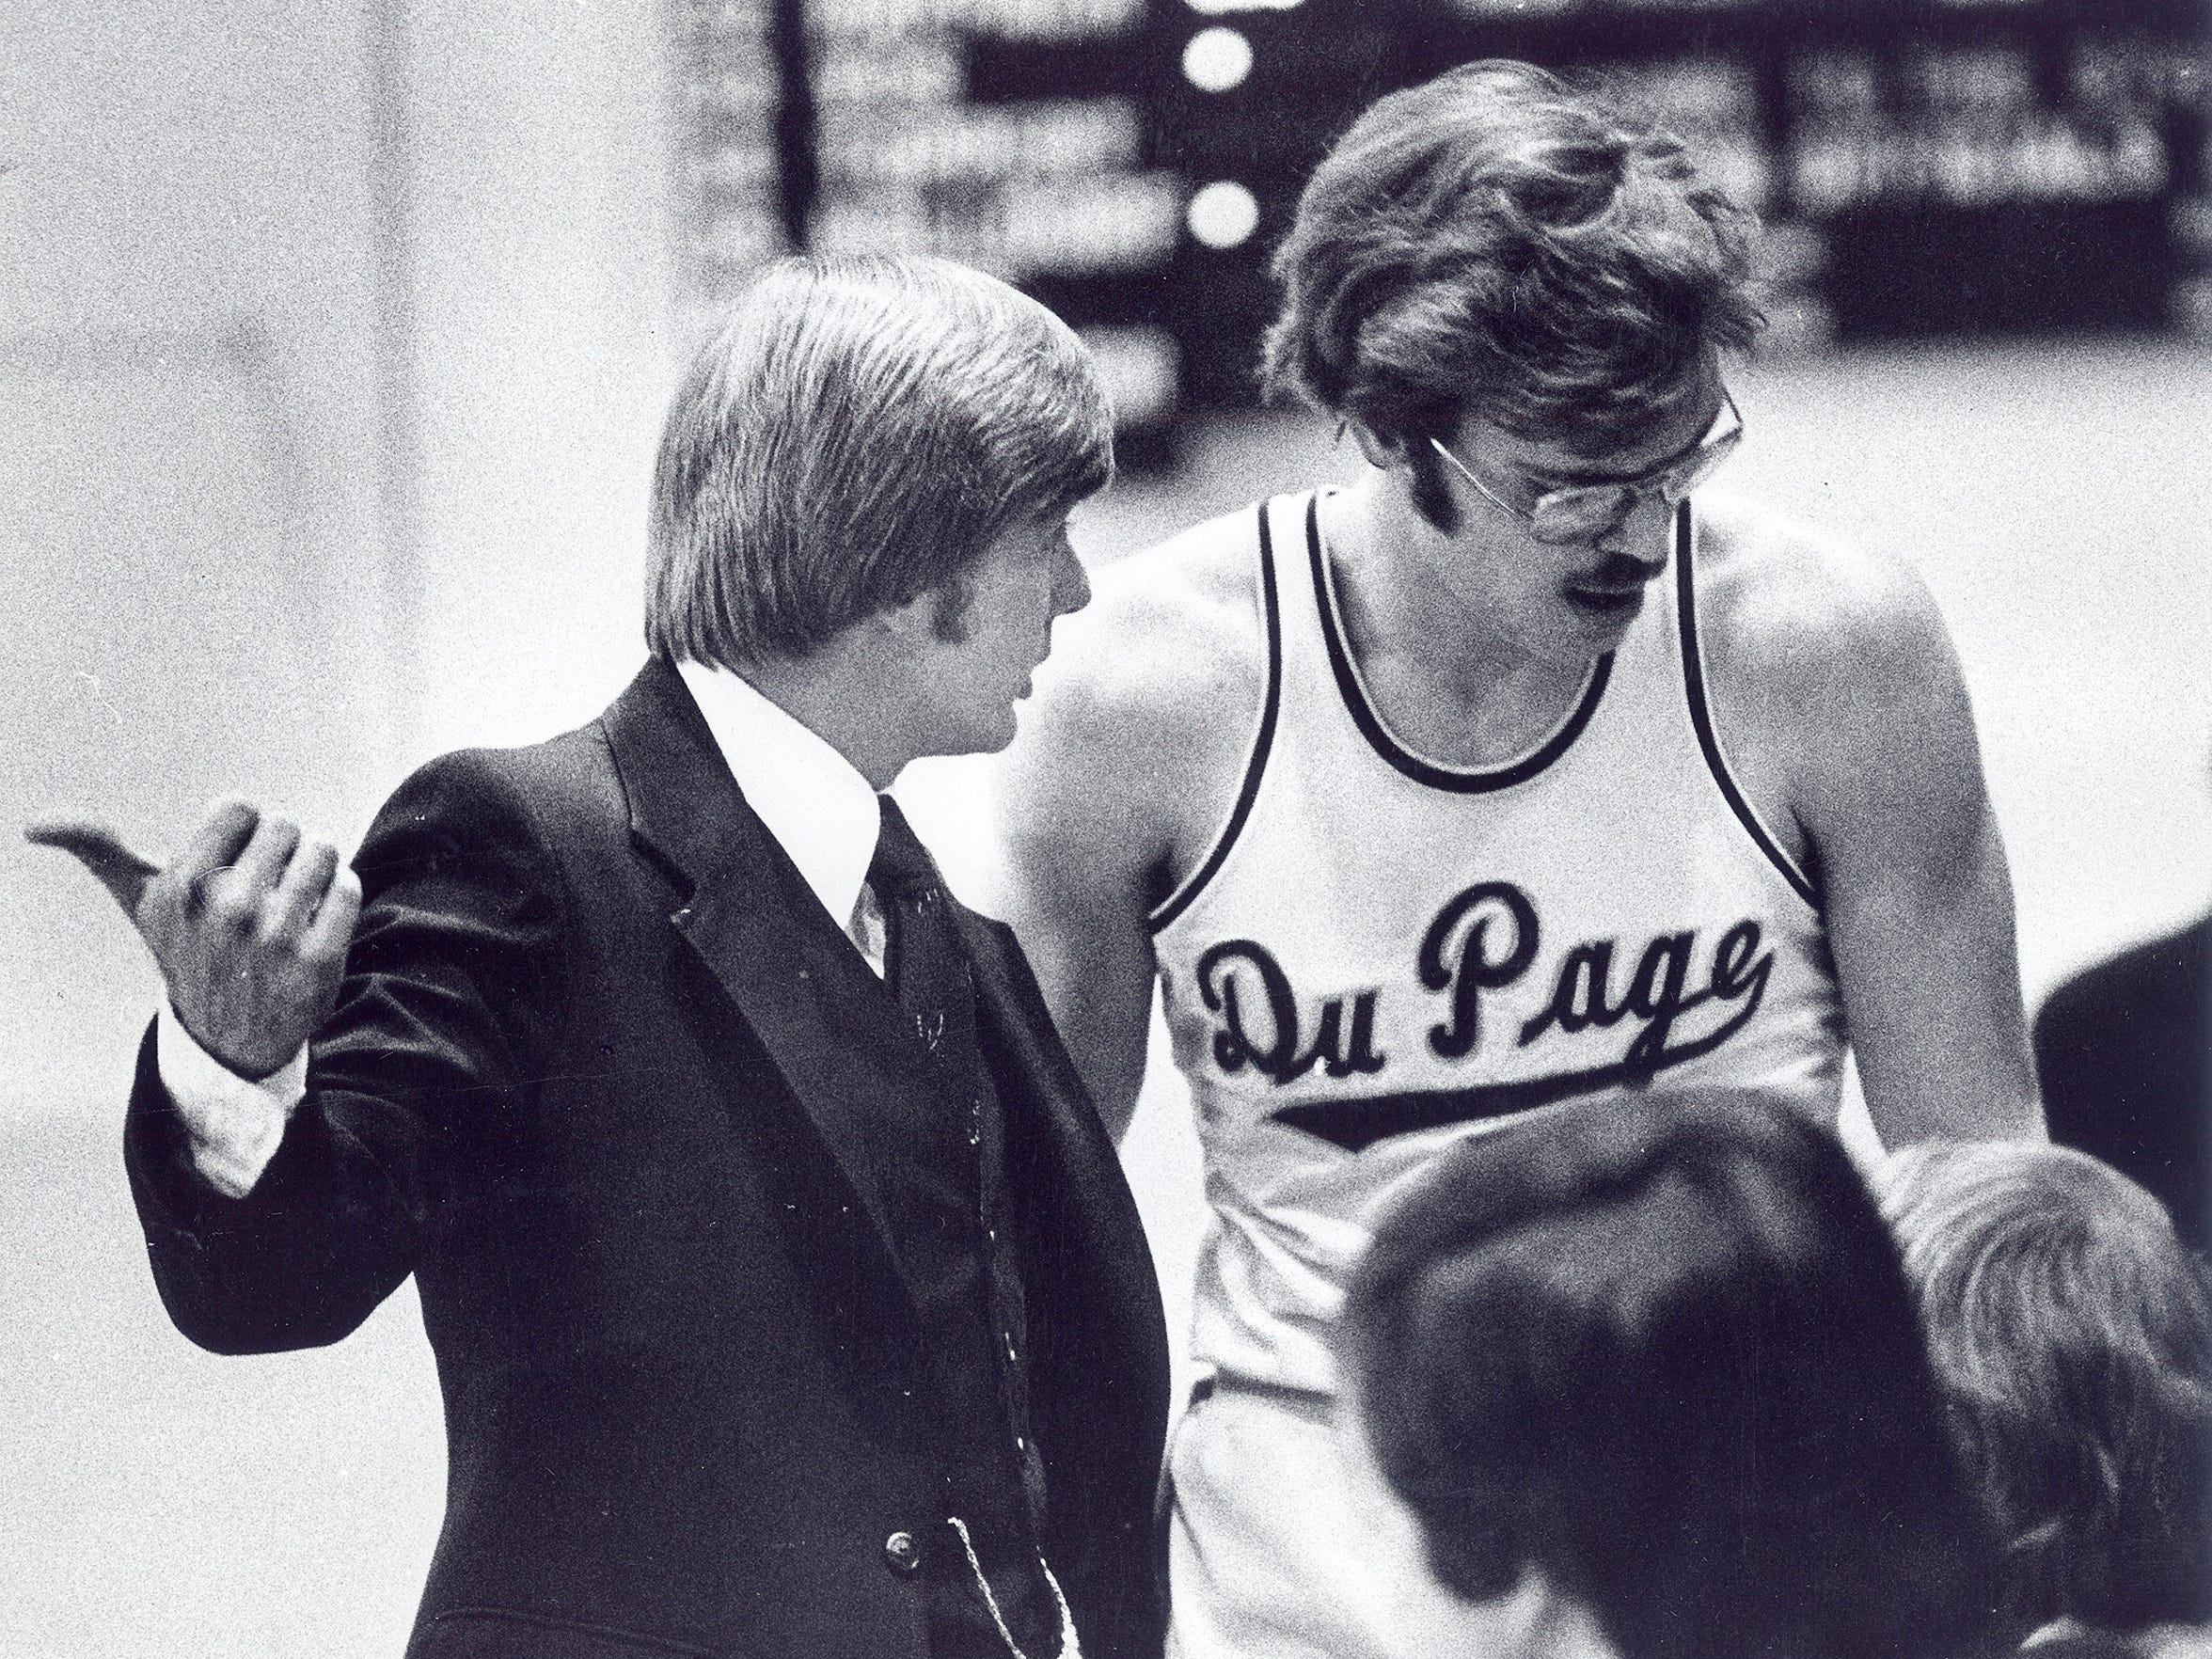 Dick Walters coaching at Du Page before taking the head coach position at UE for the 1978-1979 men's basketball season.